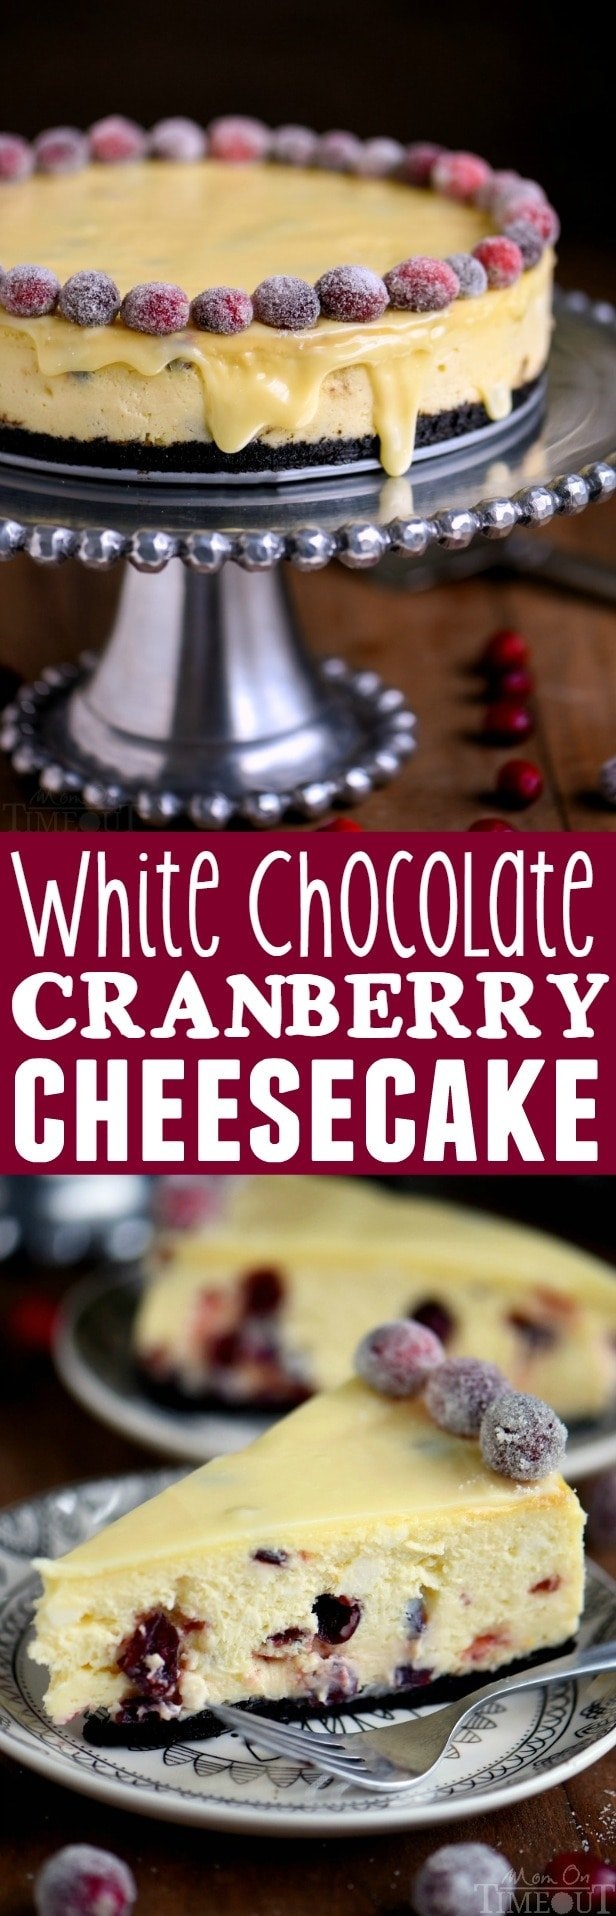 white-chocolate-cranberry-cheesecake-collage